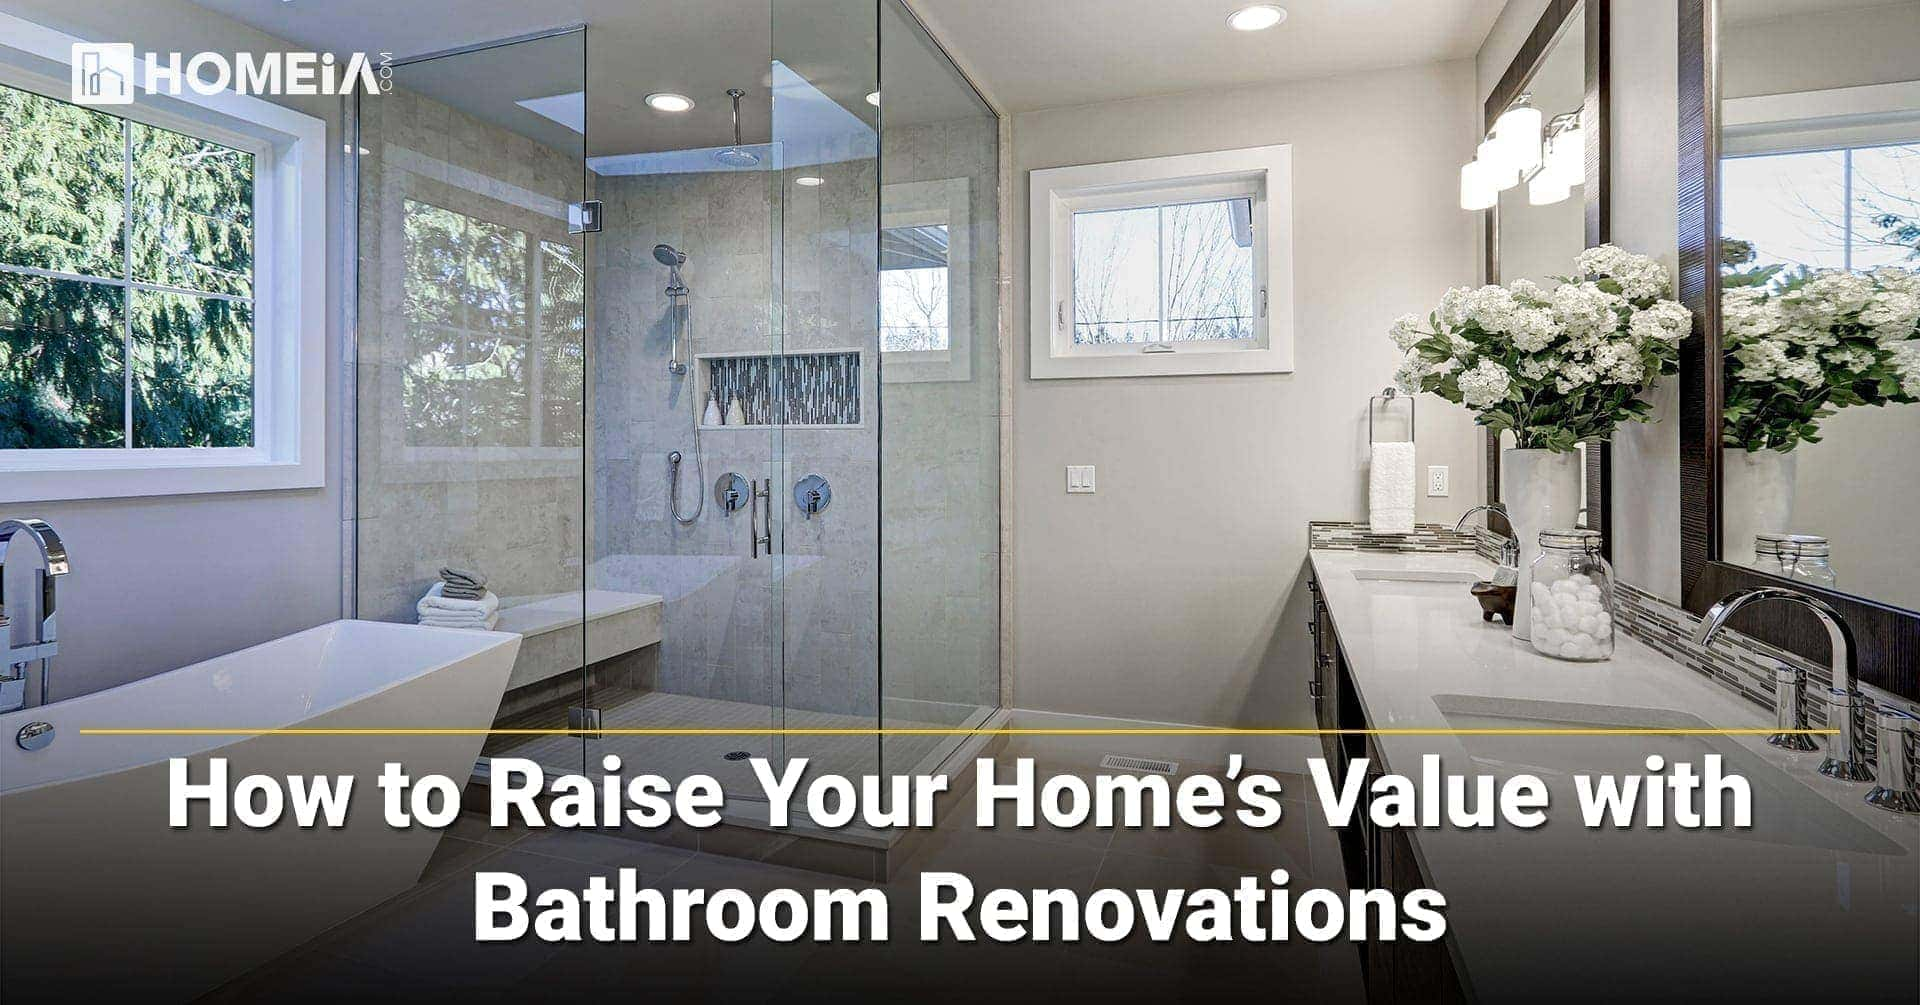 How to Raise Your Home's Value with Bathroom Renovations